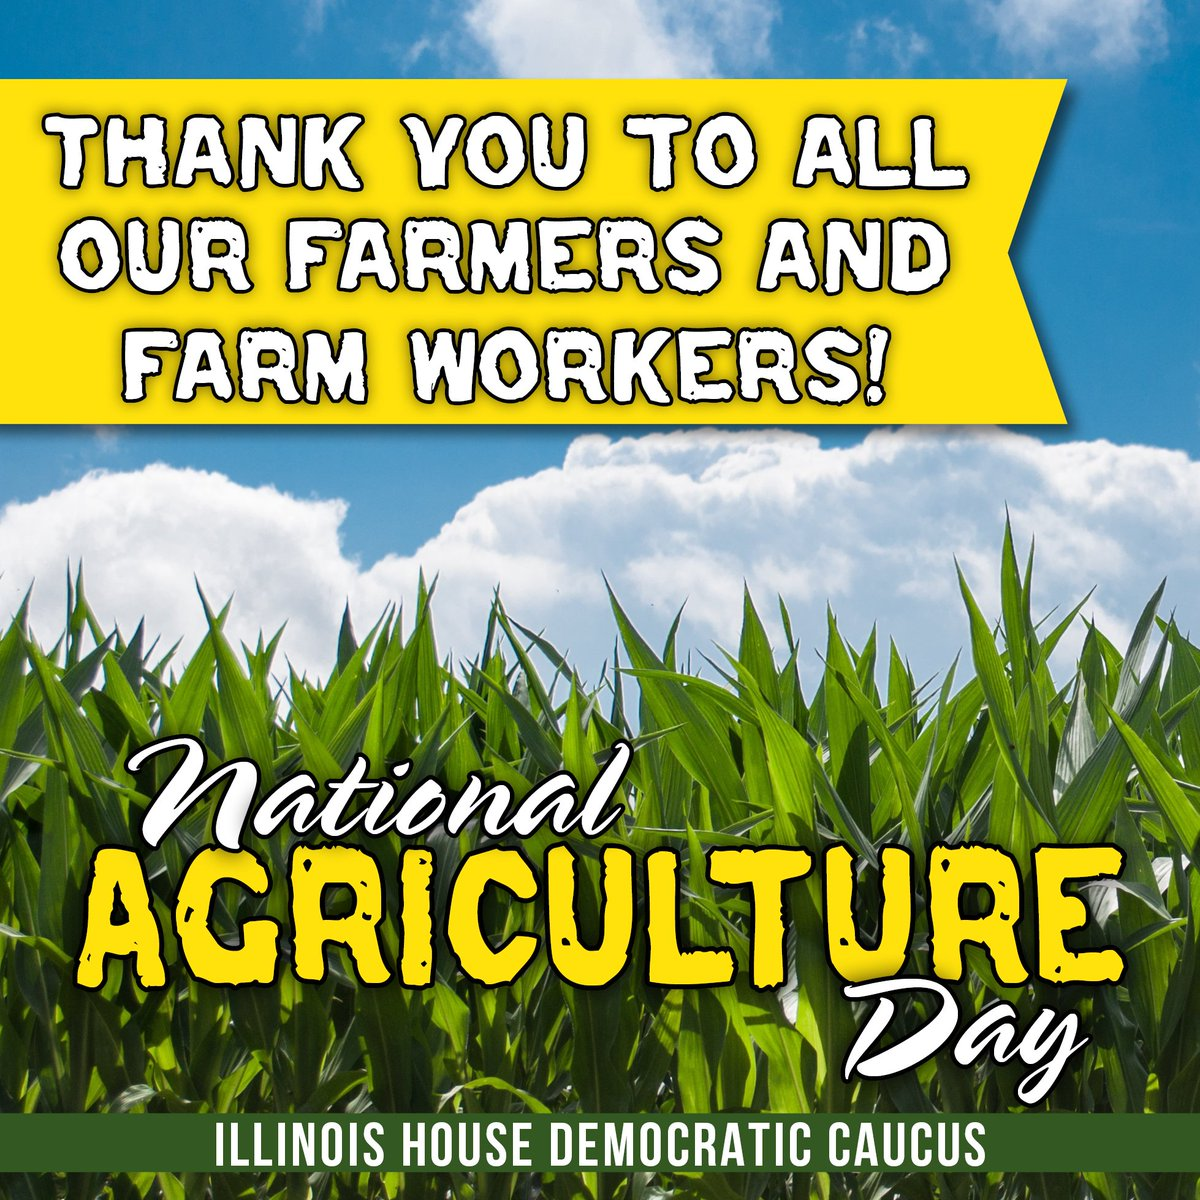 test Twitter Media - Happy #NationalAgDay! Thank you to all of our farmers, farm workers and farming communities for all that you do! https://t.co/VGHrS8mYRH